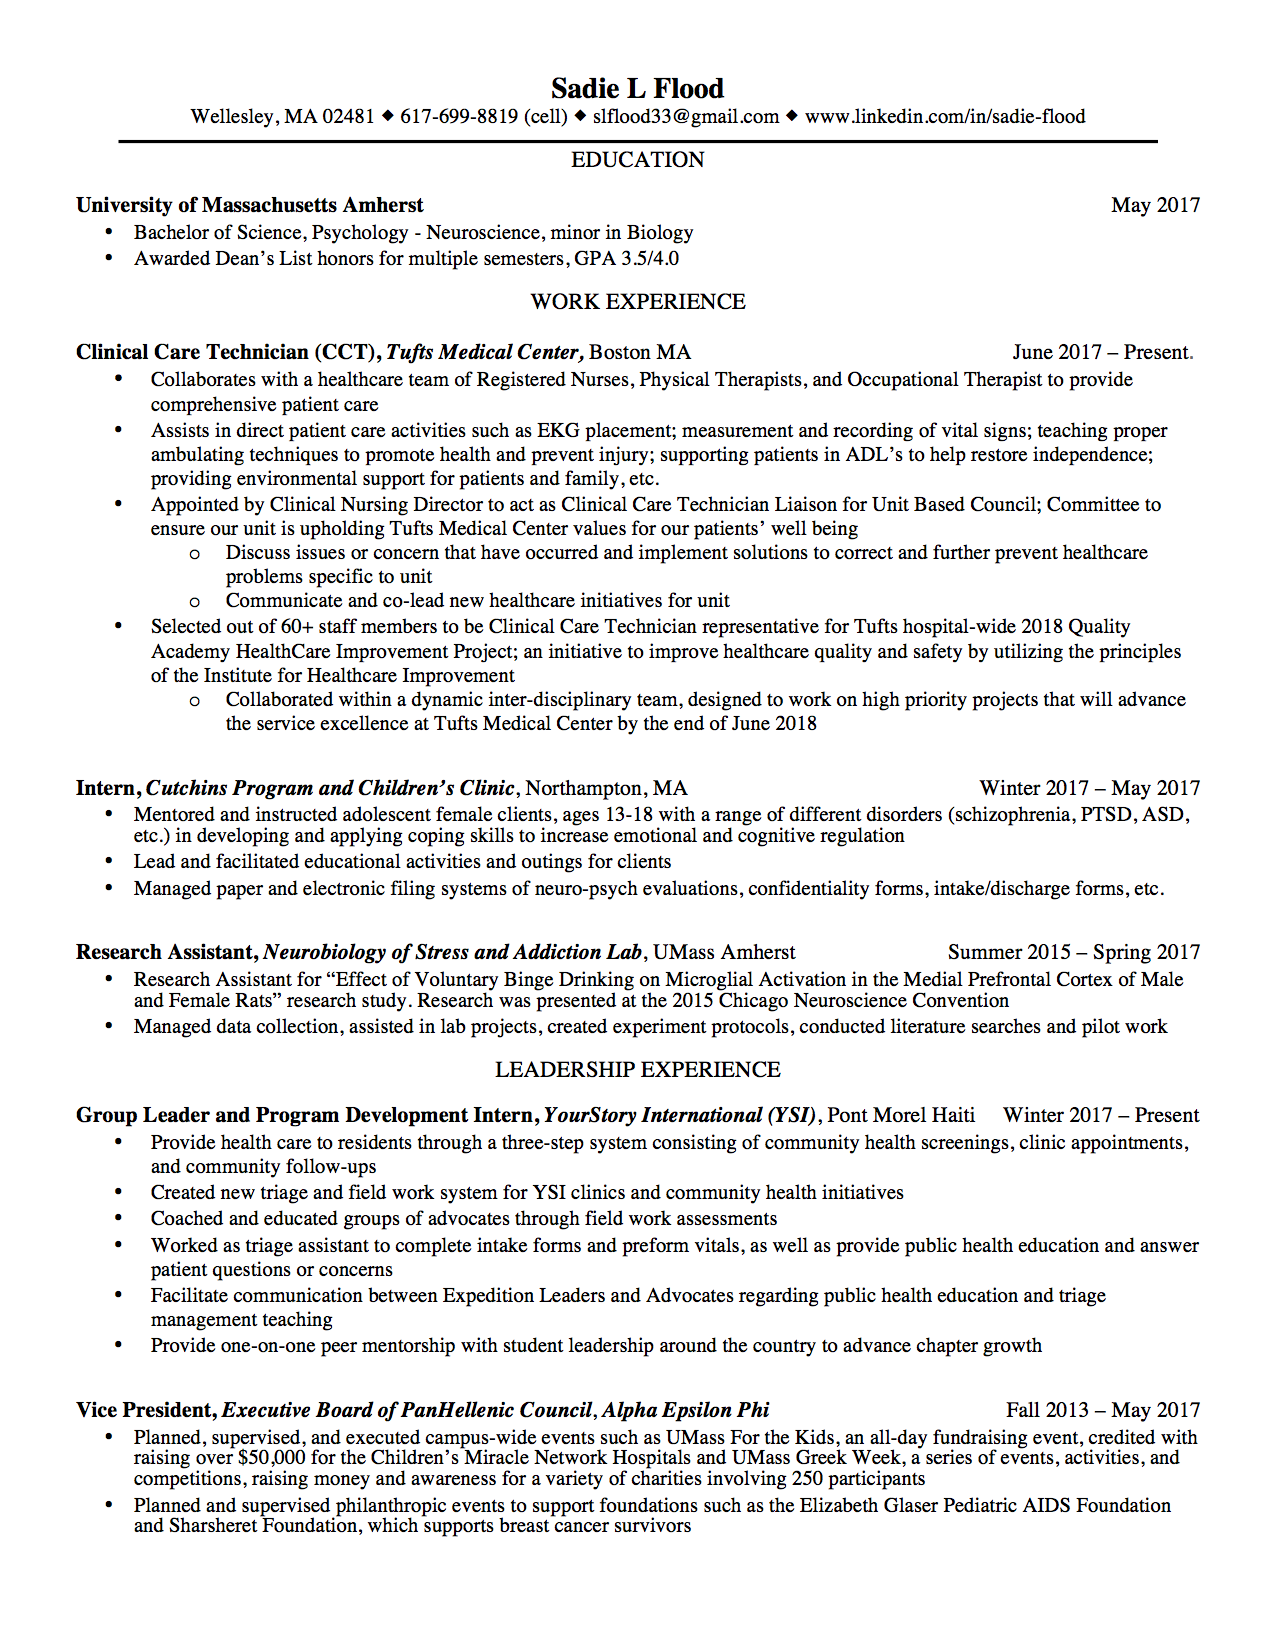 Resume Revamp Project